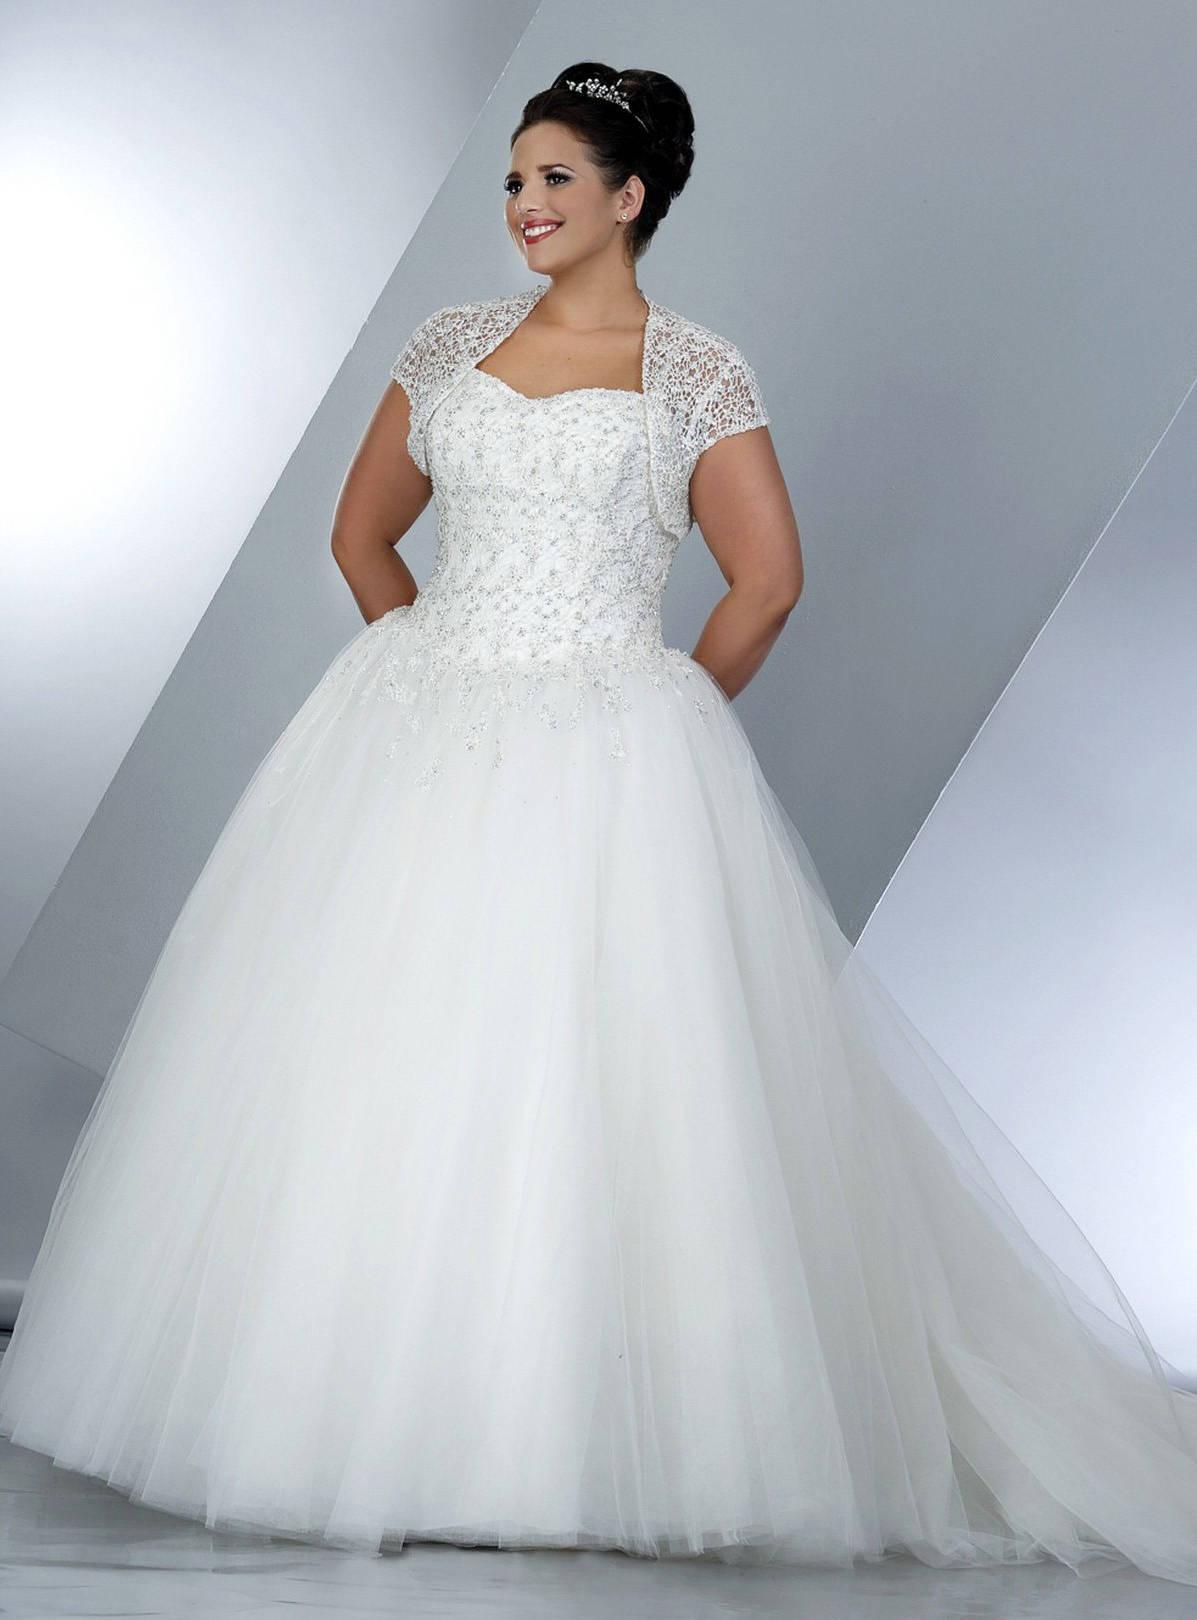 Plus Size Wedding Ball Gowns with Short Sleeve Shrug jacket